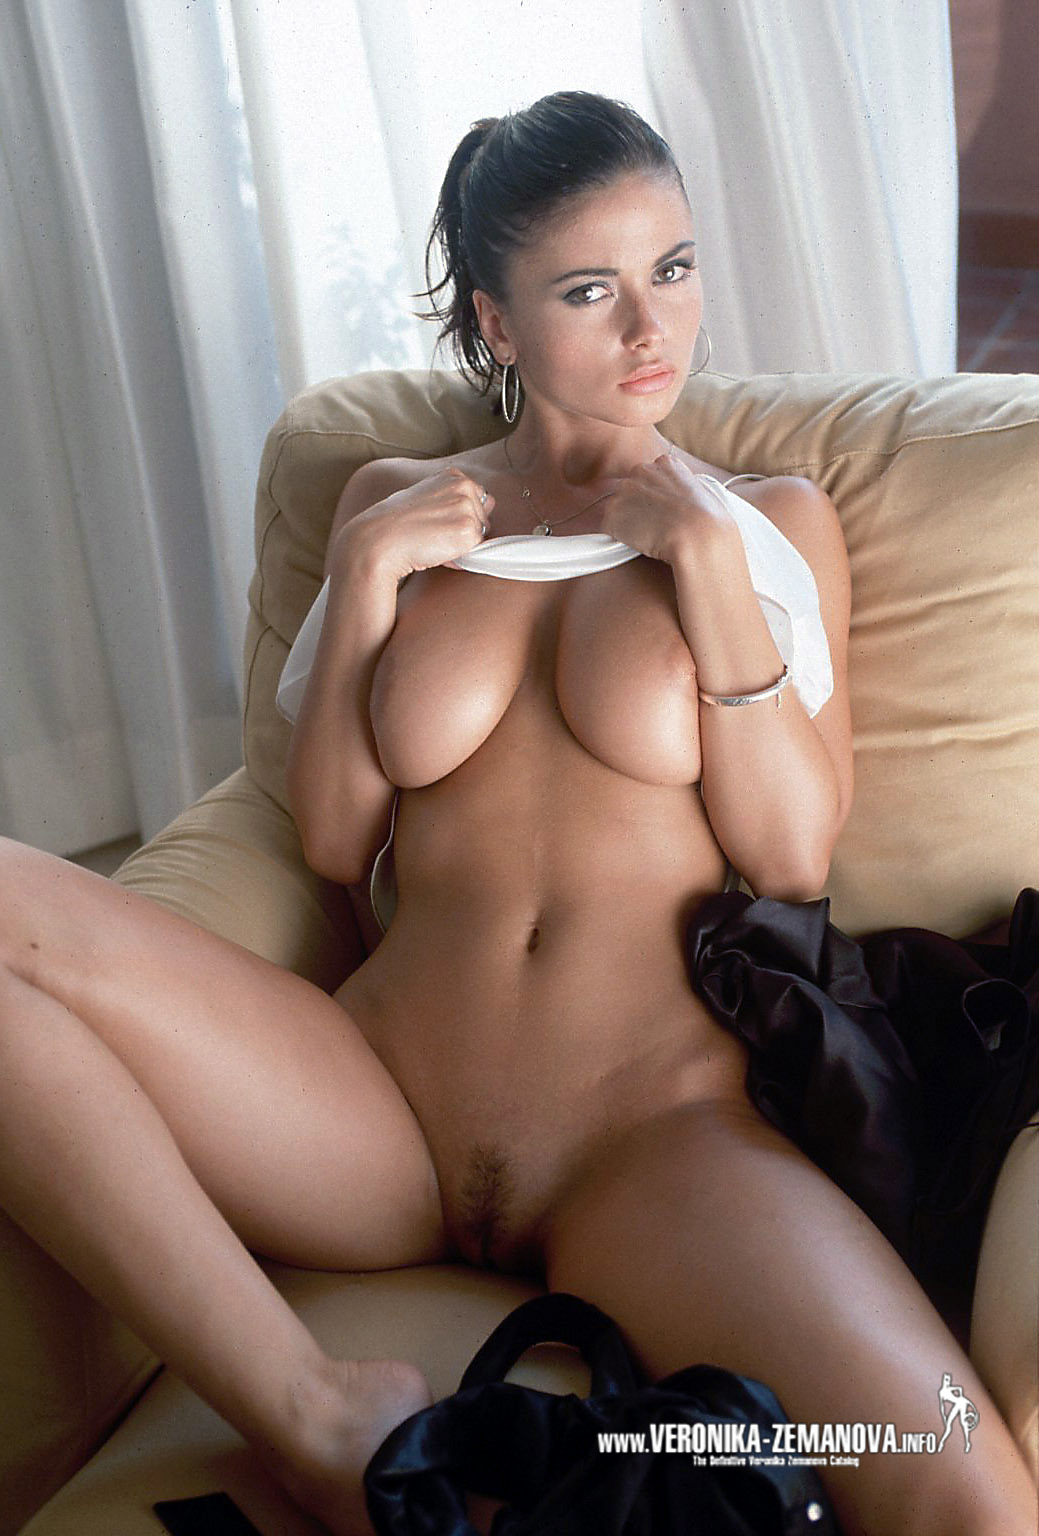 Set 453 : White Top, Tan Couch, Hair in Bun